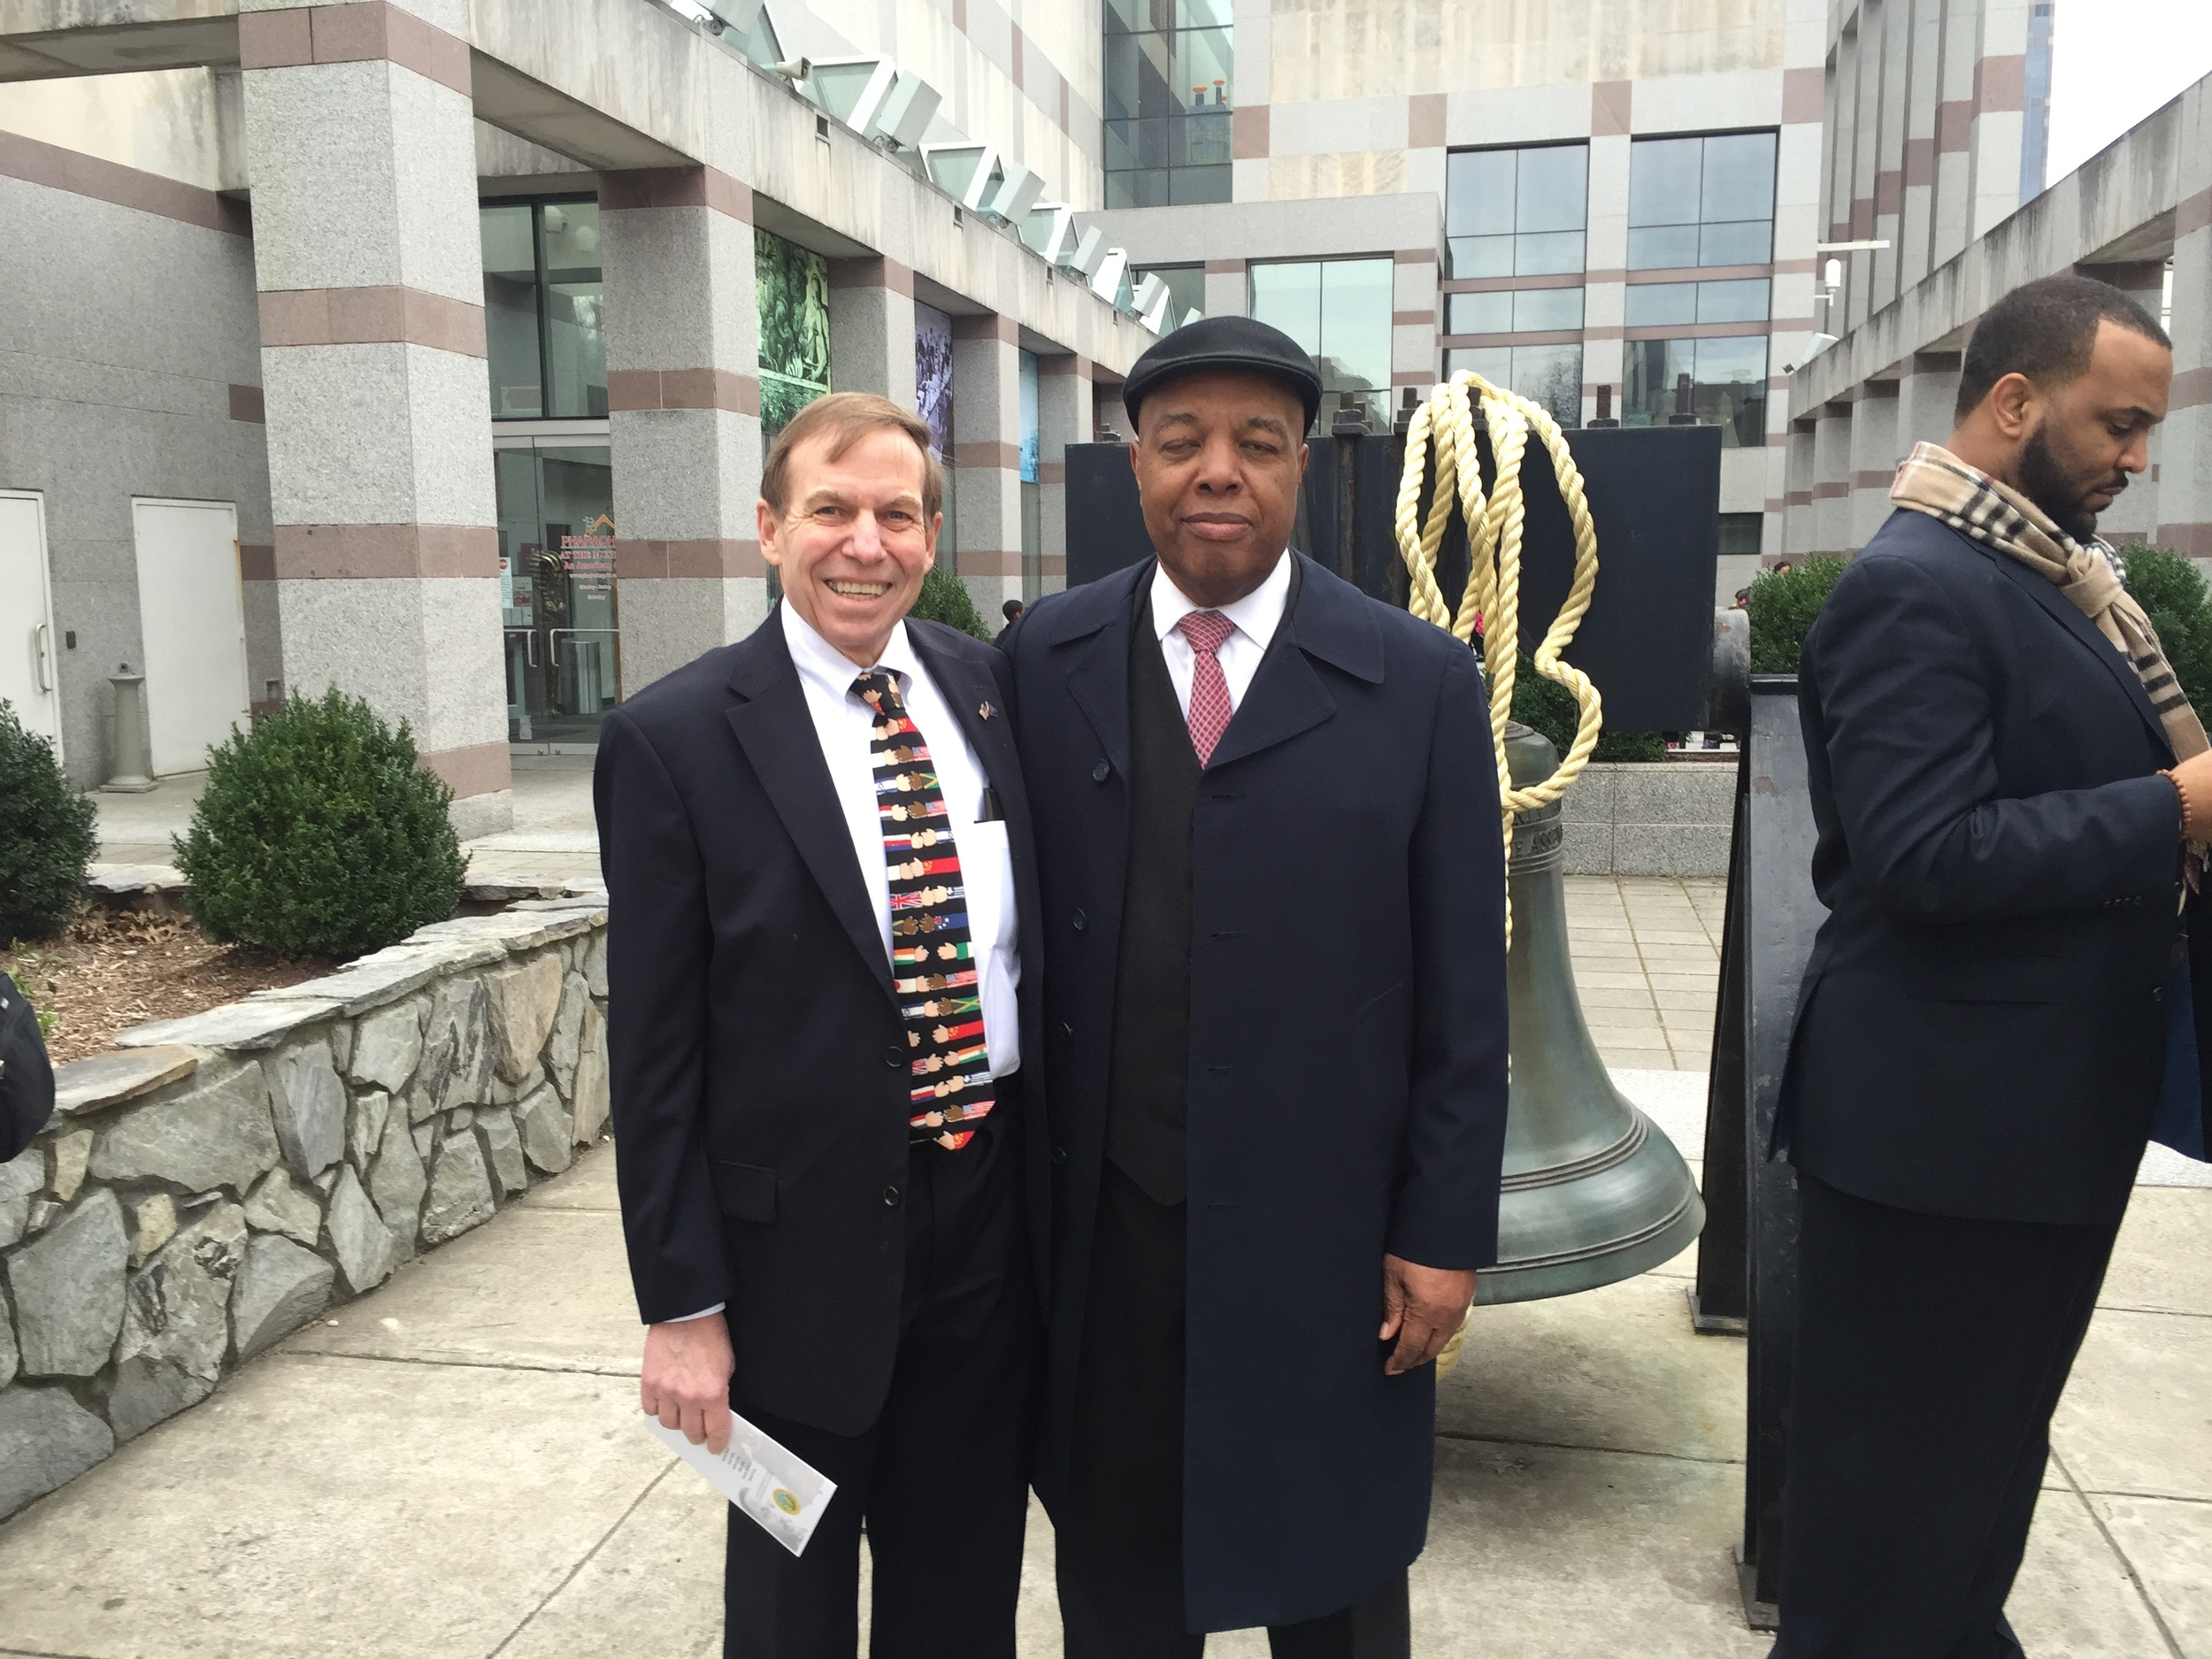 At MLK Liberty Bell ringing ceremony, January 15, 2016.